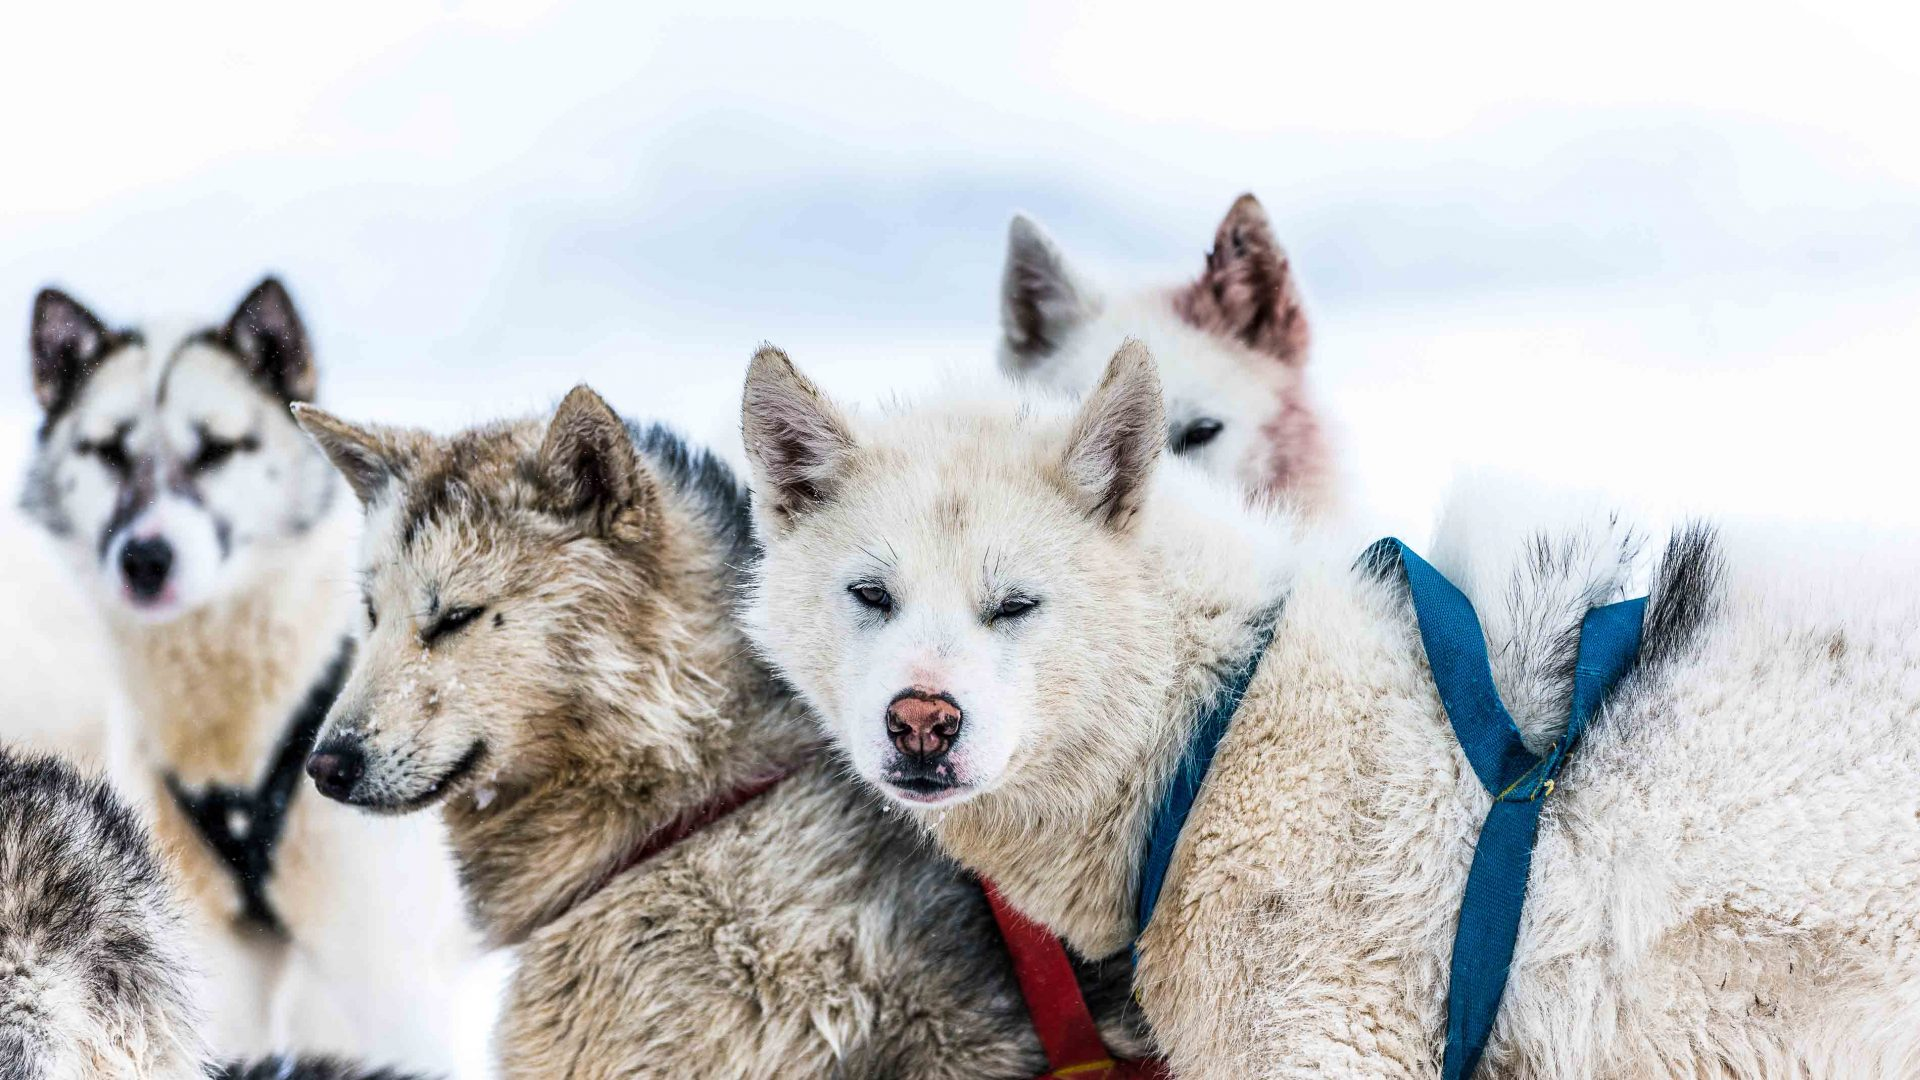 These husky-like sled dogs have been used in Greenland for over 4,000 years.